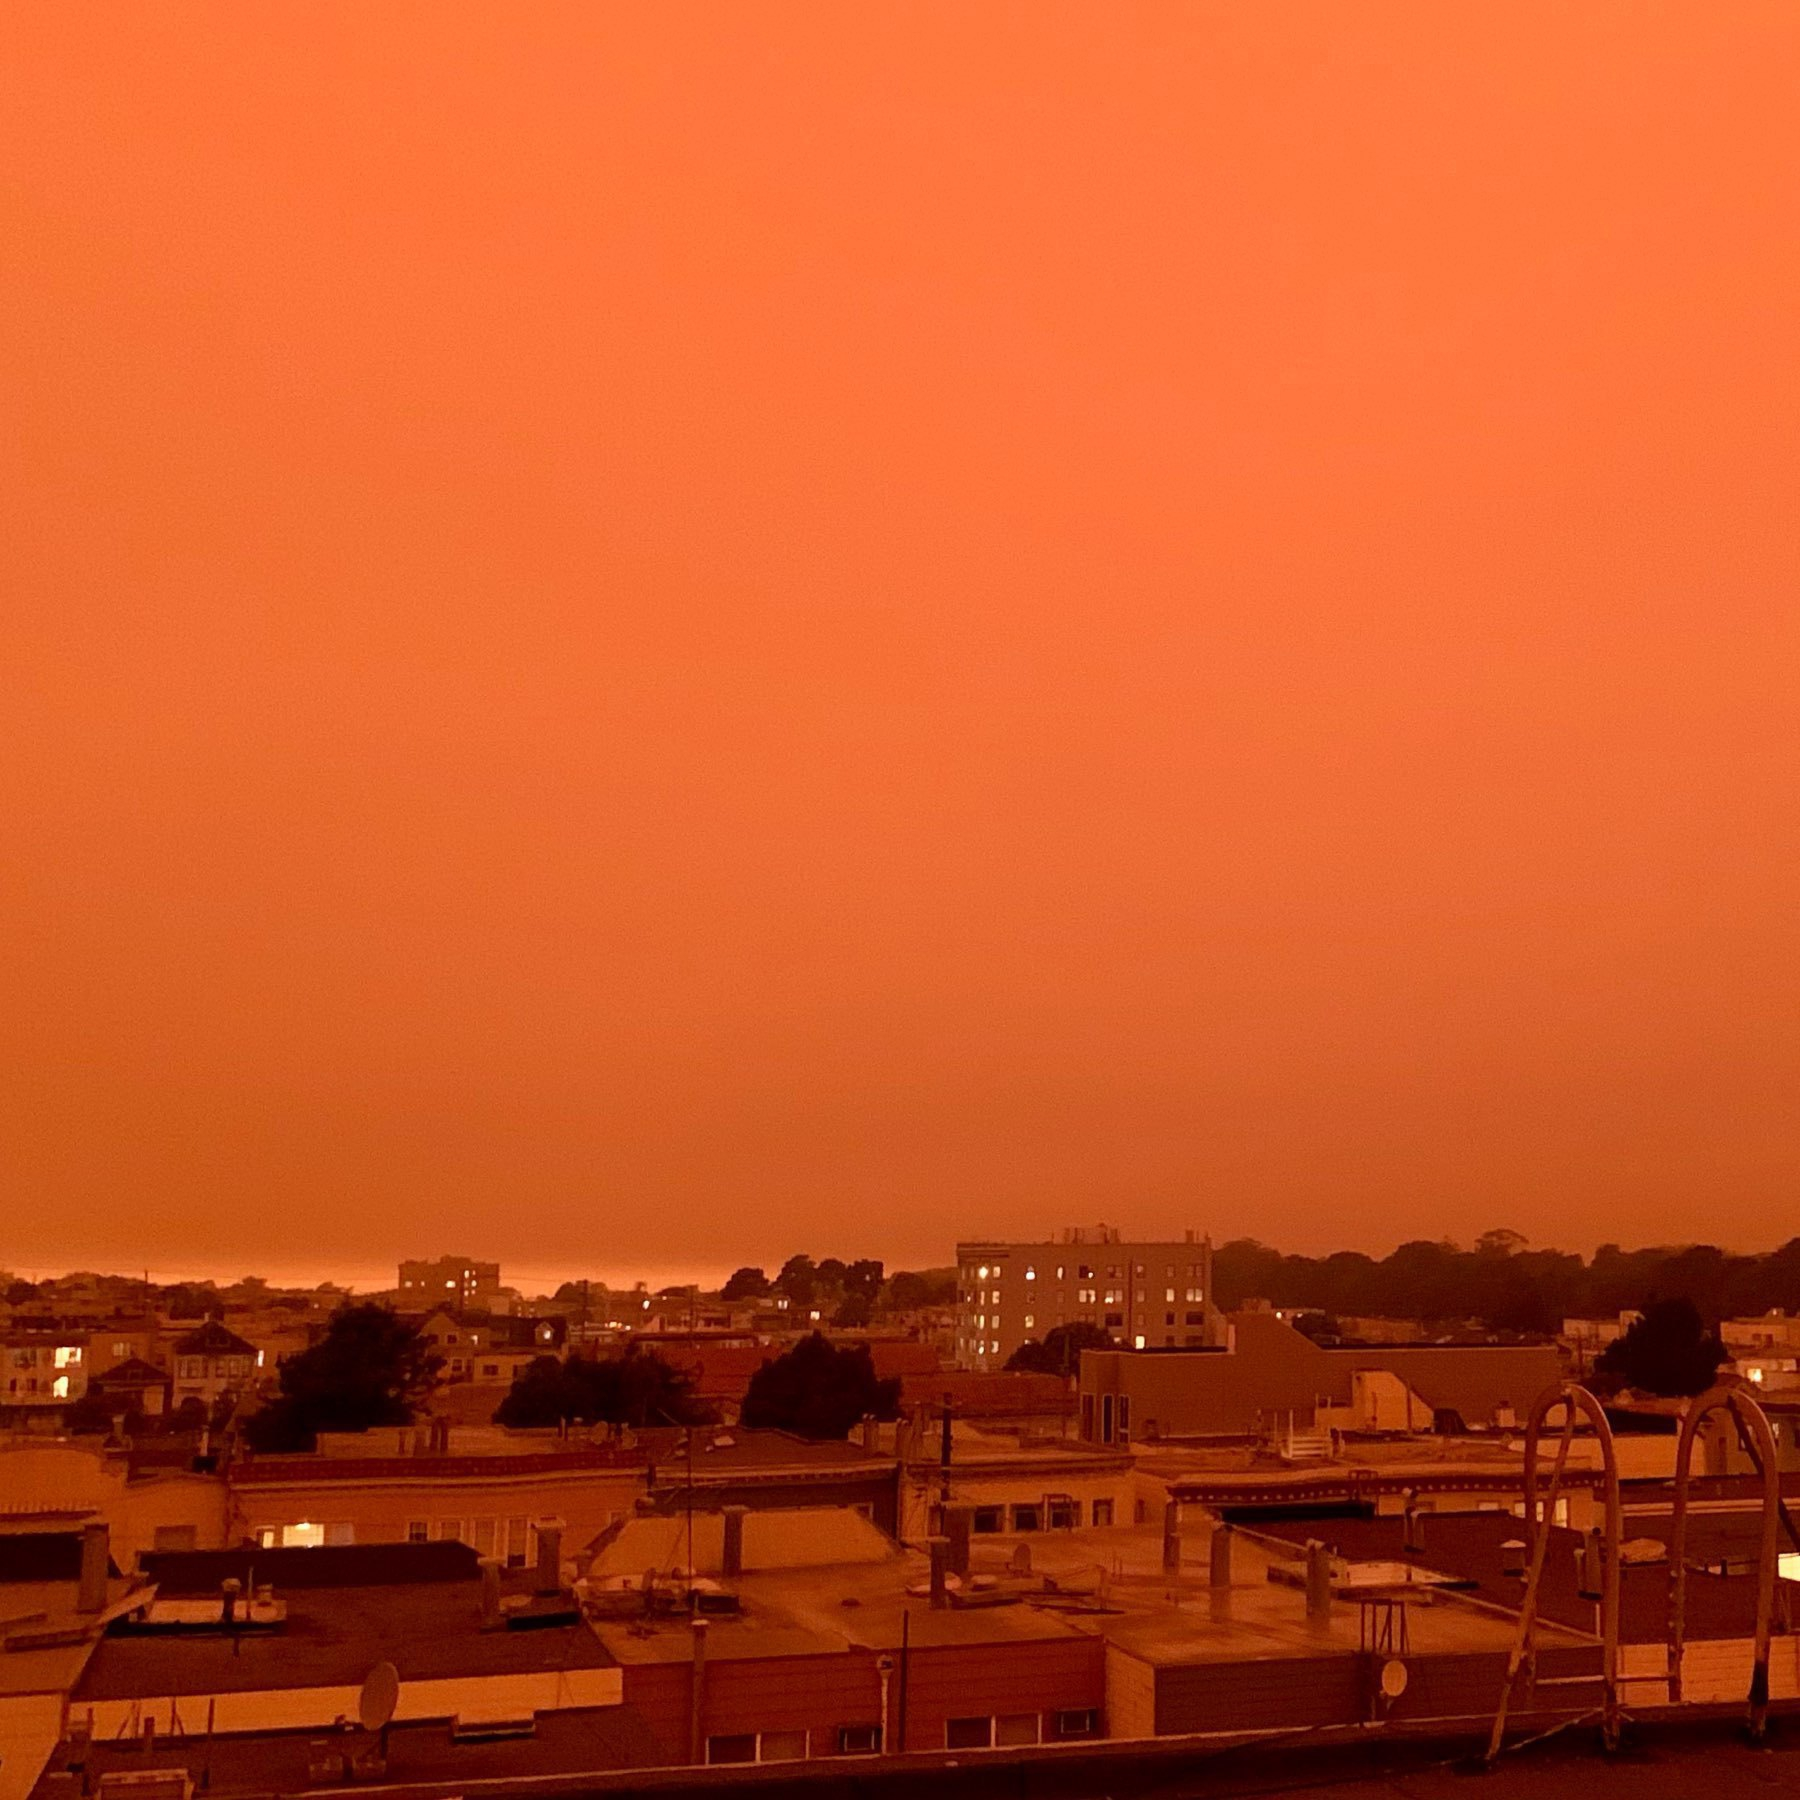 Red skies over San Francisco looking forwards the Pacific Ocean